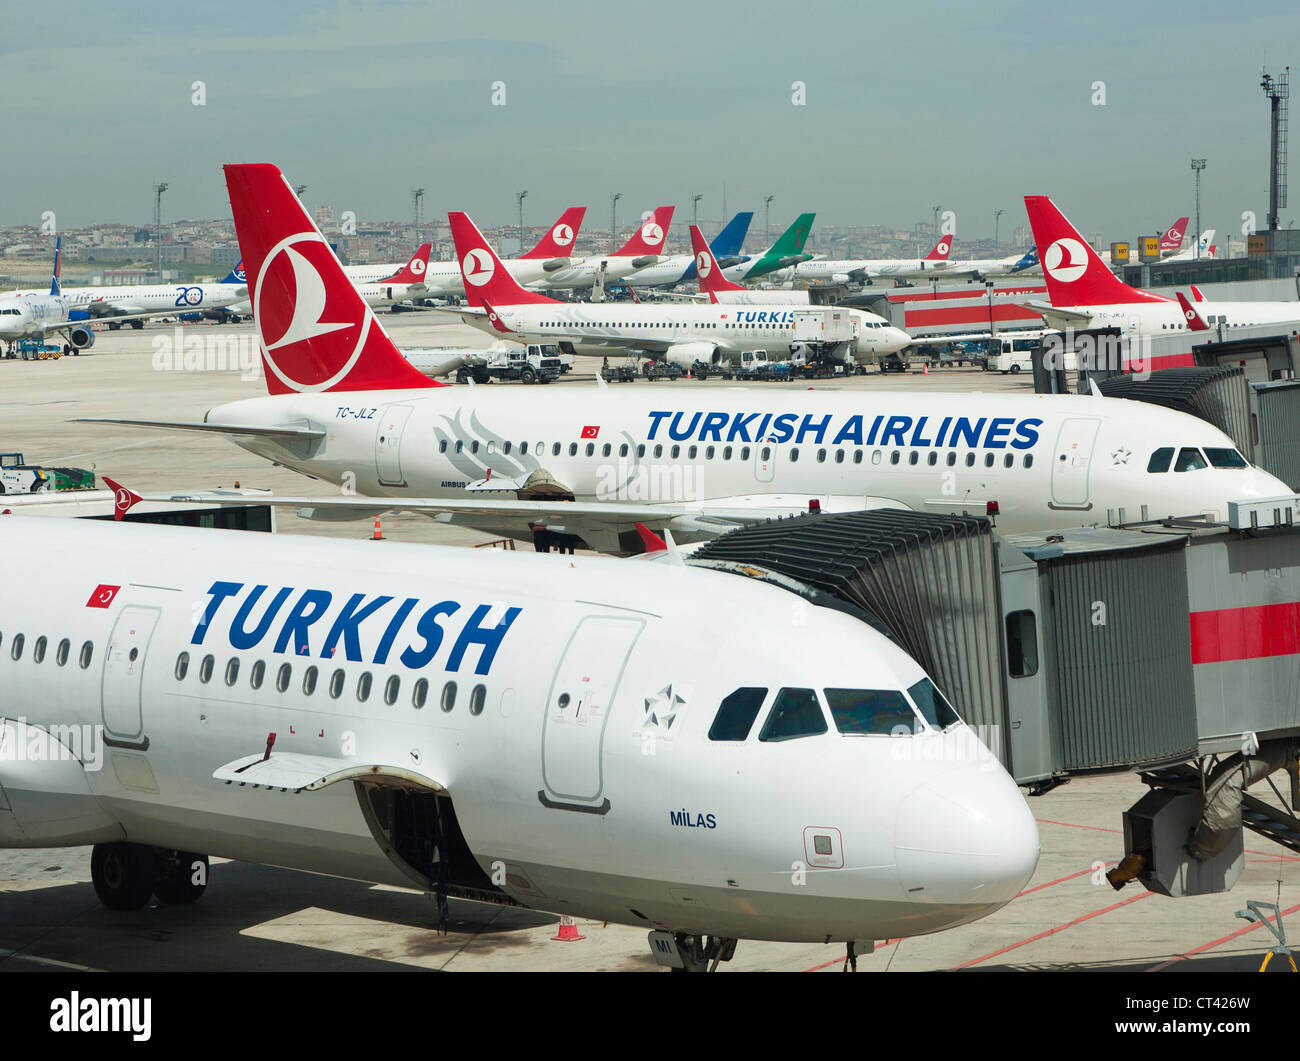 Turkish Airlines planes at Ataturk international airport in Istanbul Turkey - Stock Image